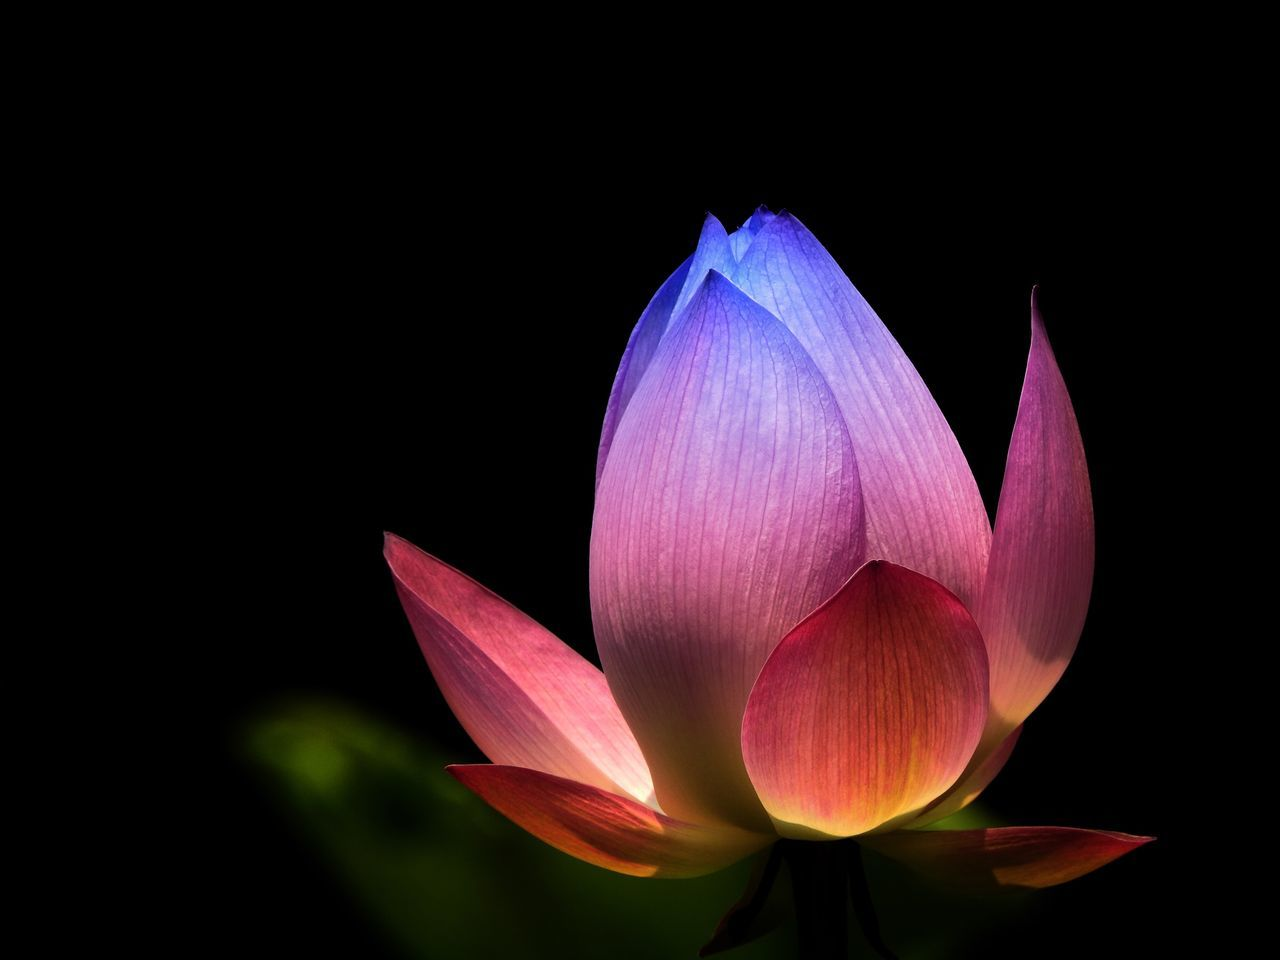 Flower Petal Fragility Flower Head Beauty In Nature Freshness Nature Growth Plant Close-up Lotus Water Lily Blooming Black Background No People Studio Shot Lotus Pink Color Water Lily Outdoors Day